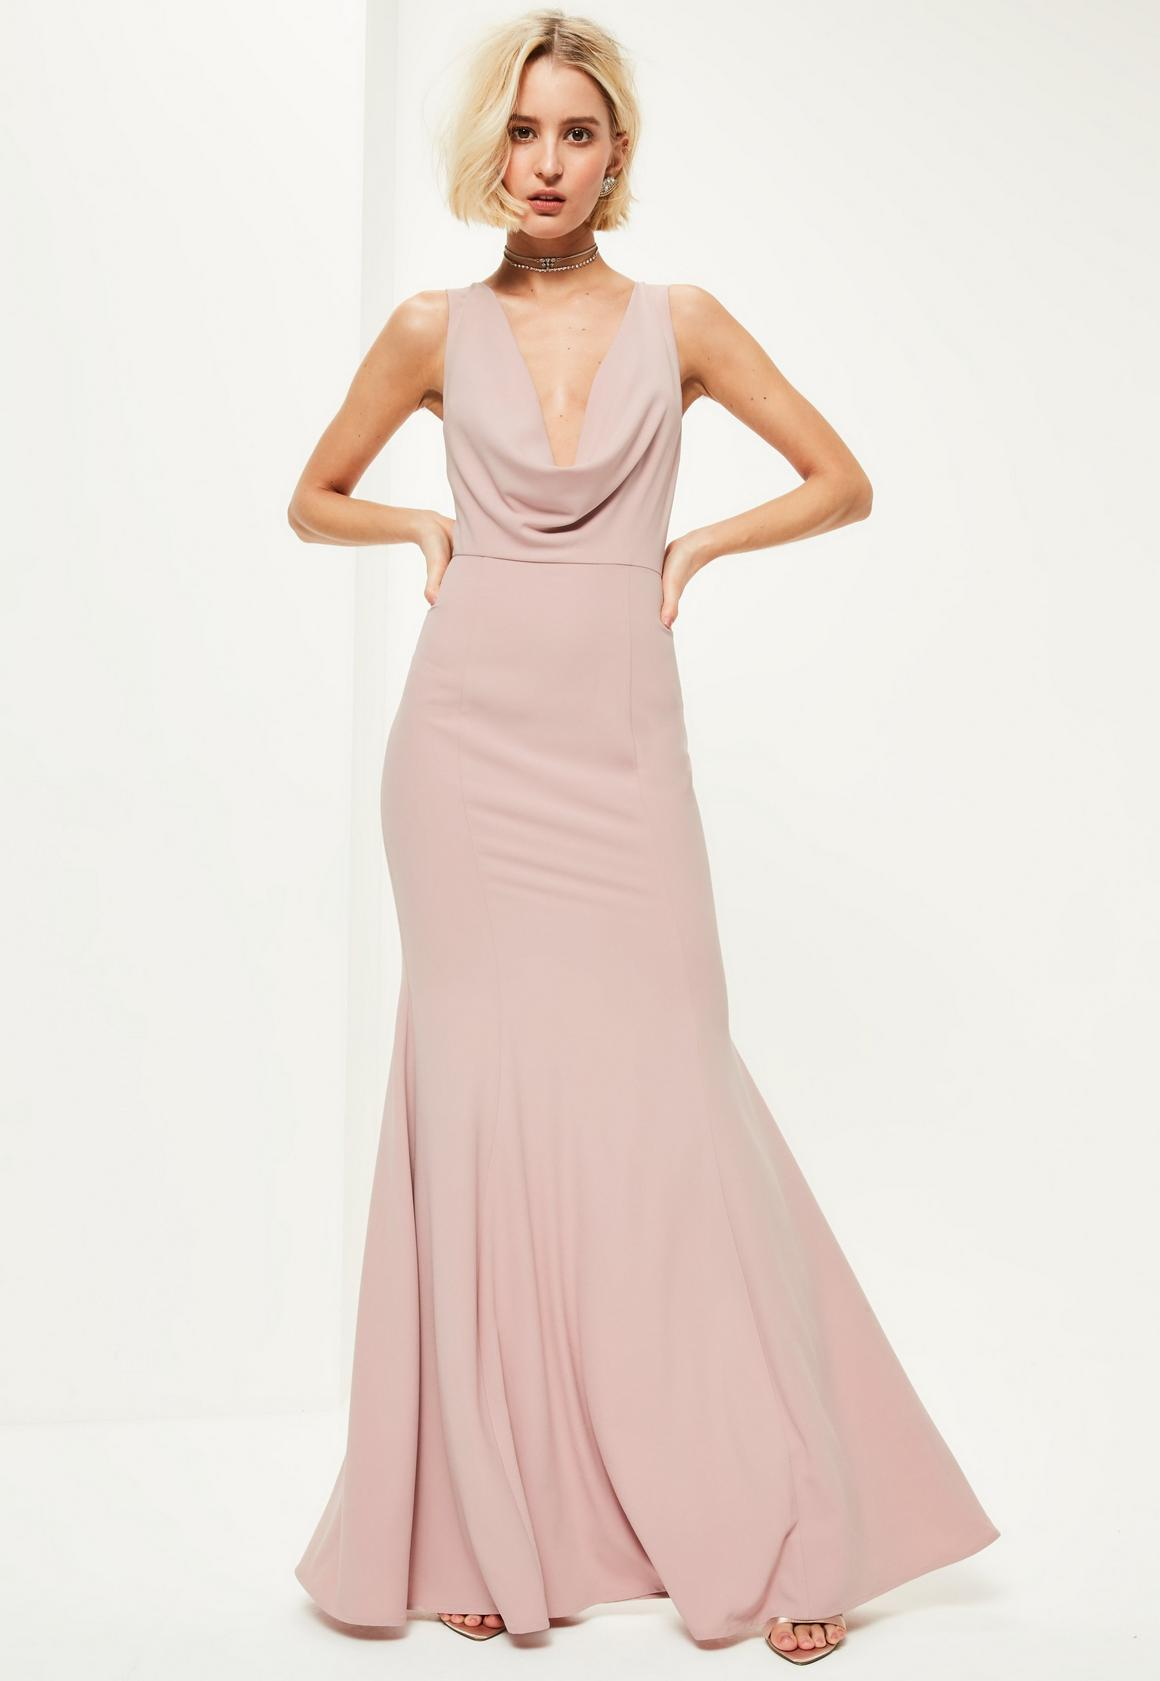 Cowl neck maxi dress uk